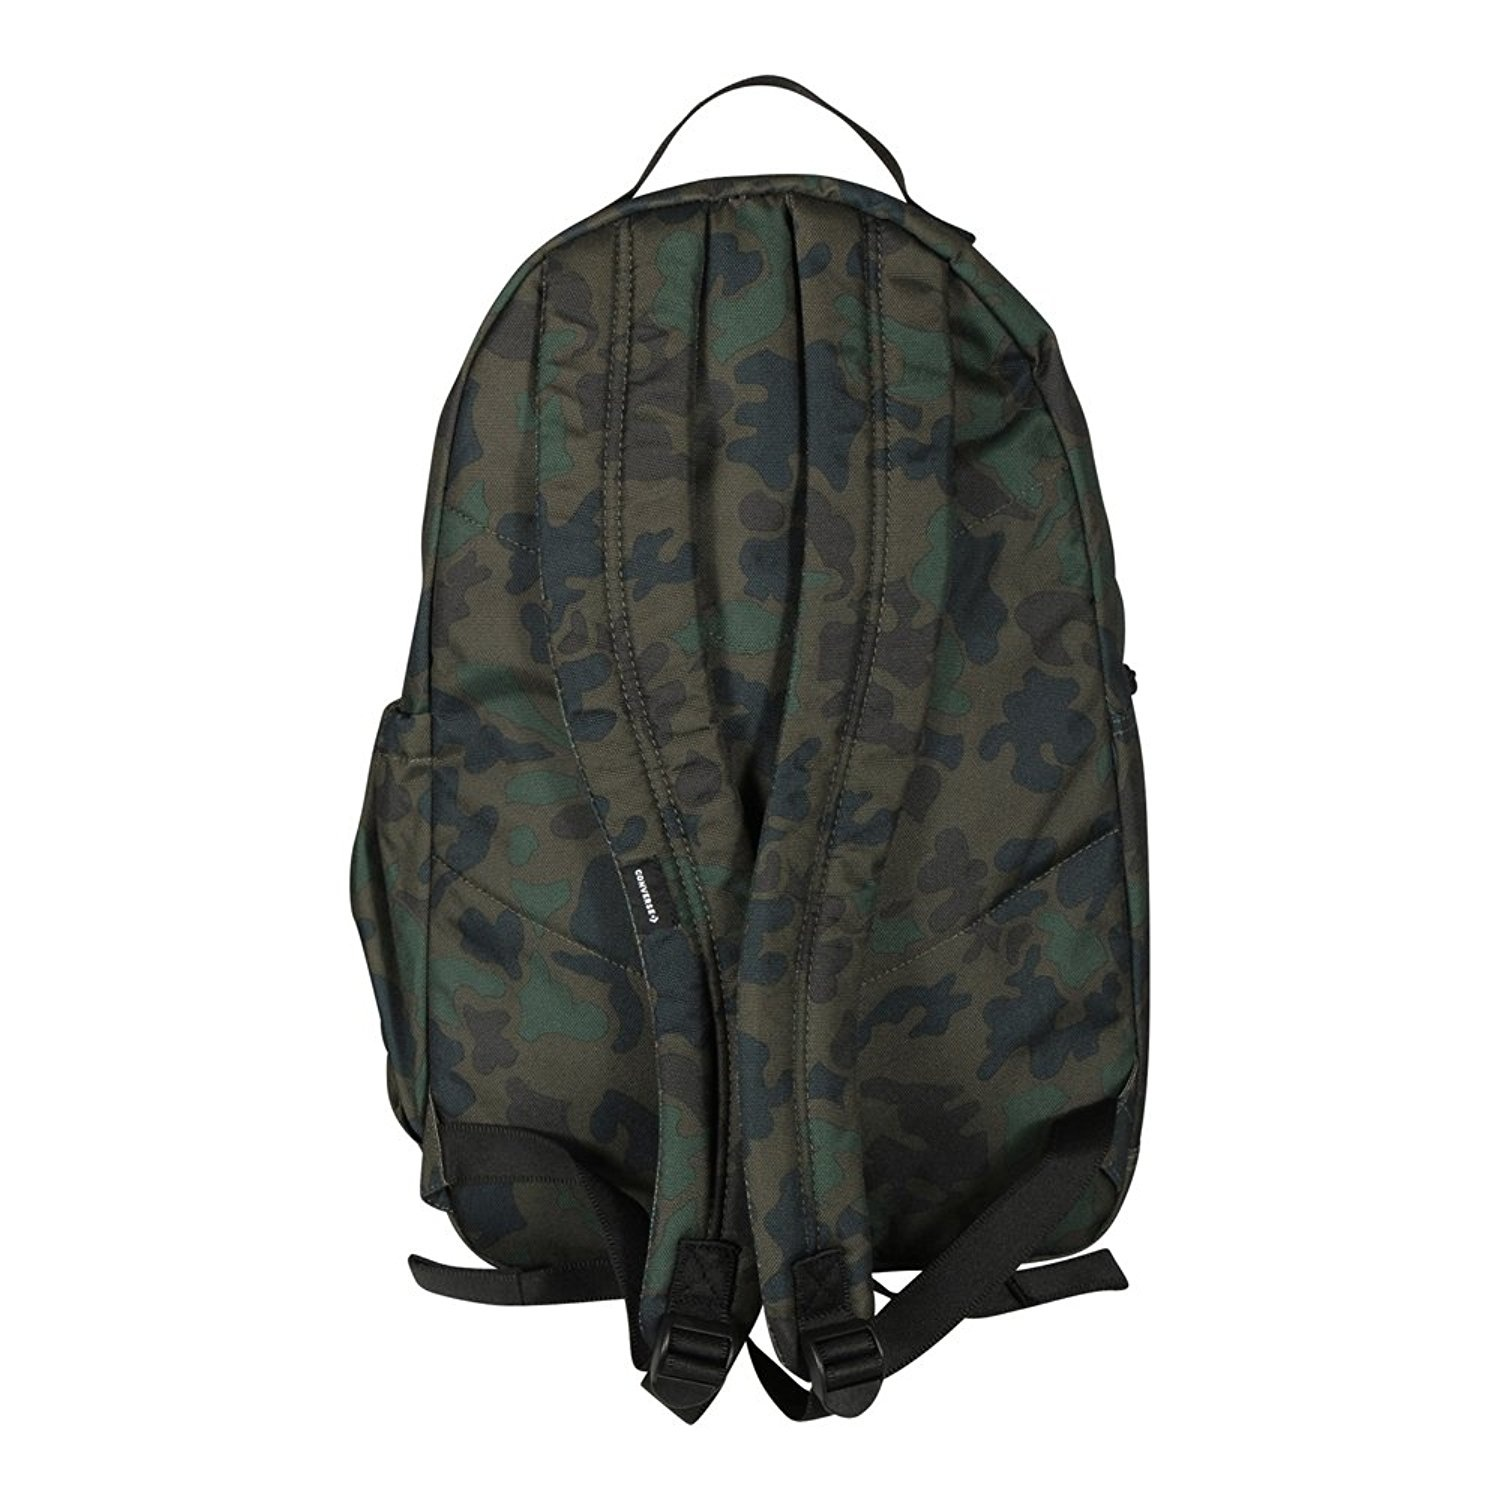 e4c62006b8ba Converse Backpacks Bags  Buy Online from Fishpond.co.nz